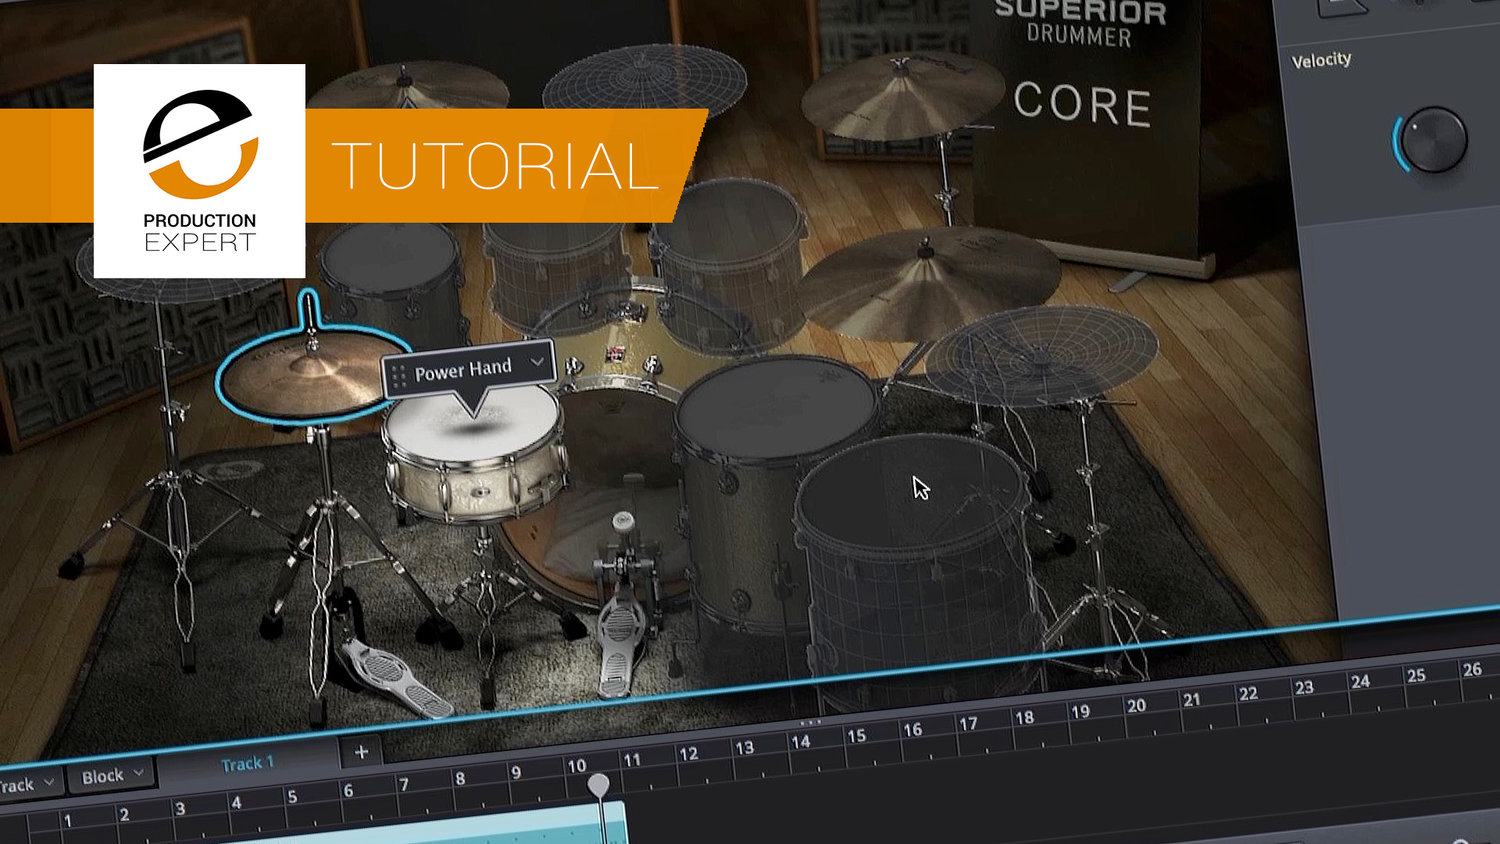 Using e drums with superior drummer